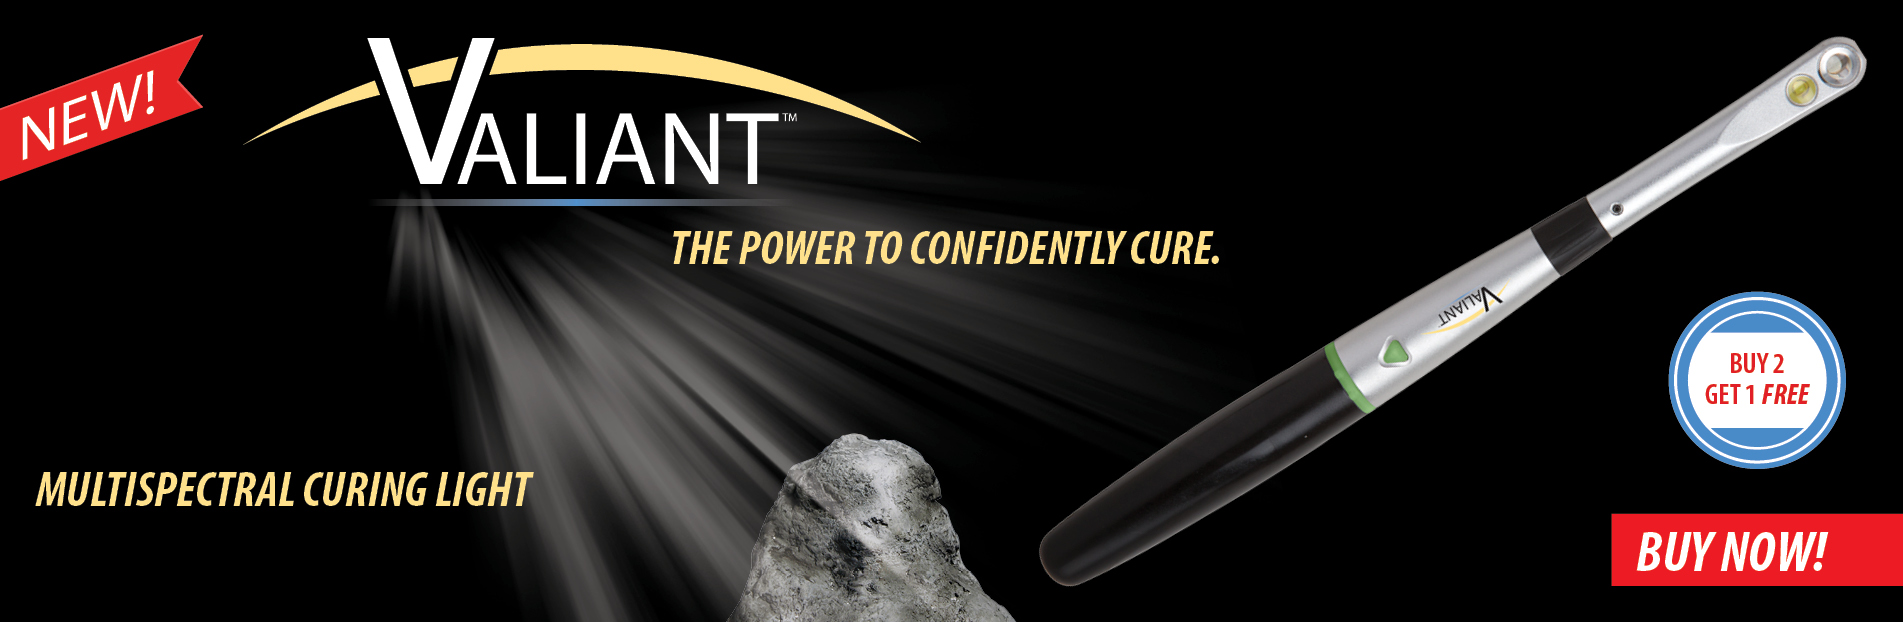 Valiant LED Curing Light